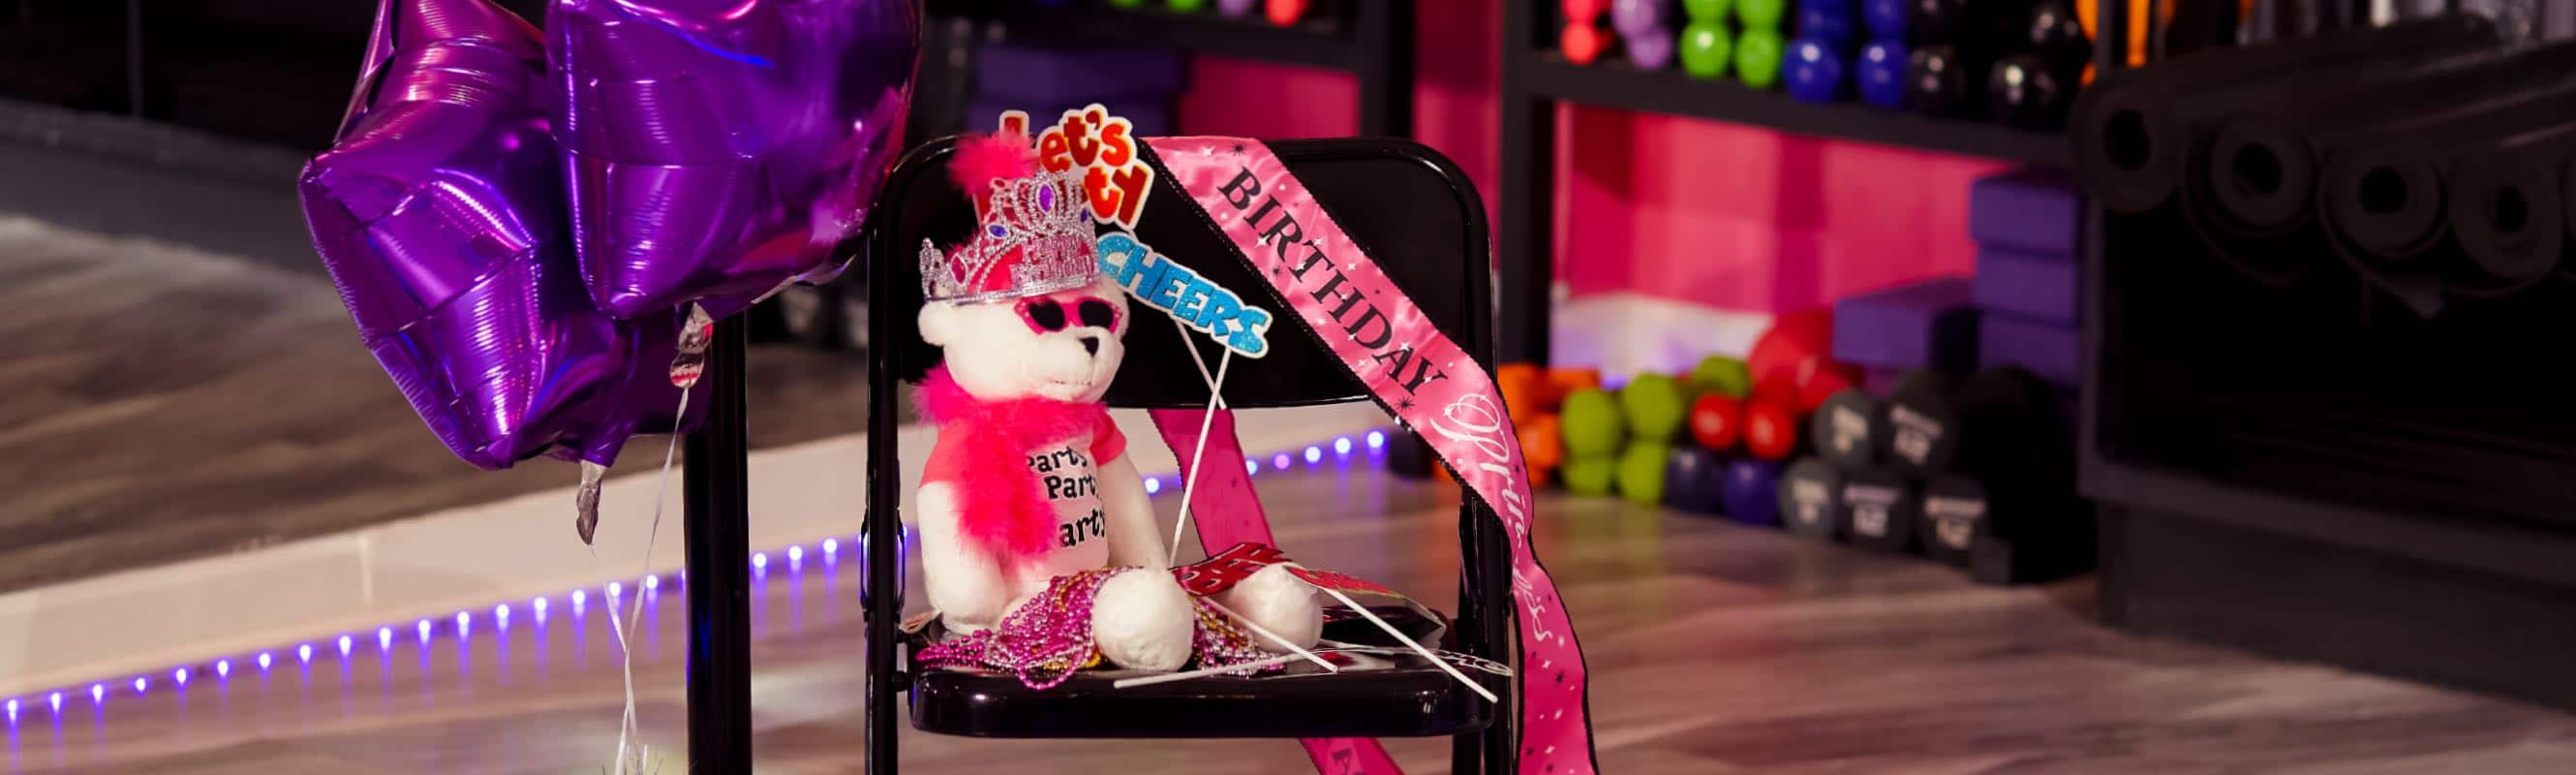 2019-1214-Twisted-Fitness-Party-Bear-Birthday-1767-2600×800-COMPRESSED